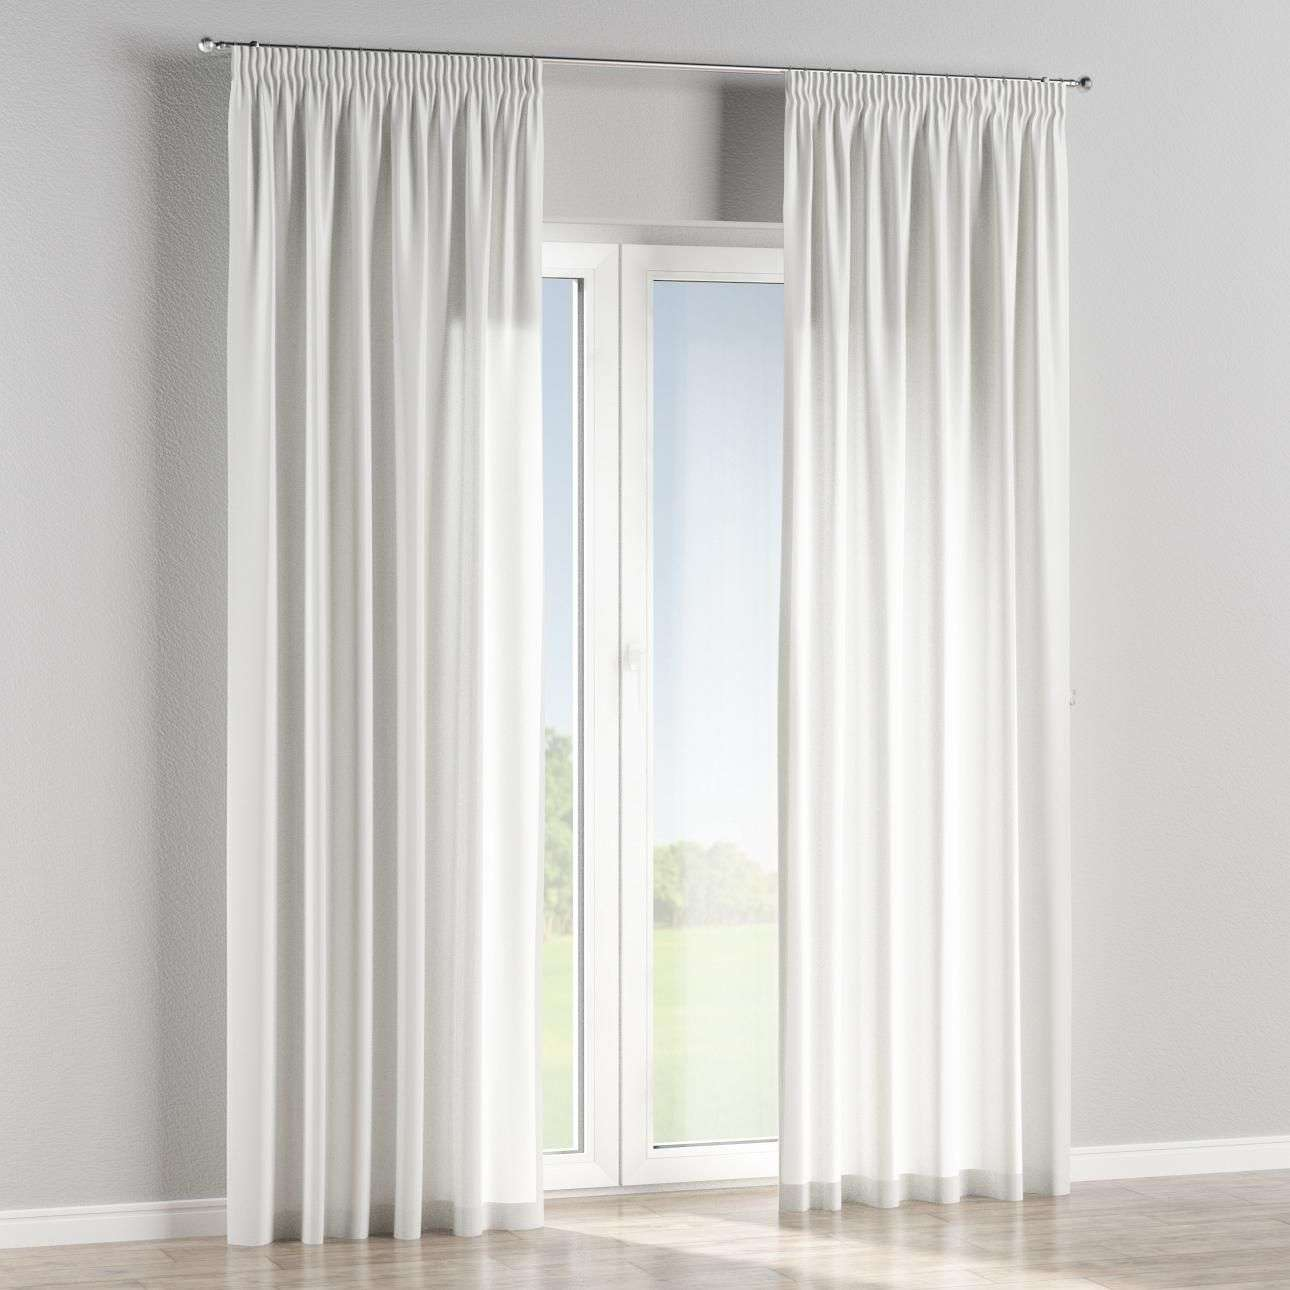 Pencil pleat curtains in collection SALE, fabric: 130-11